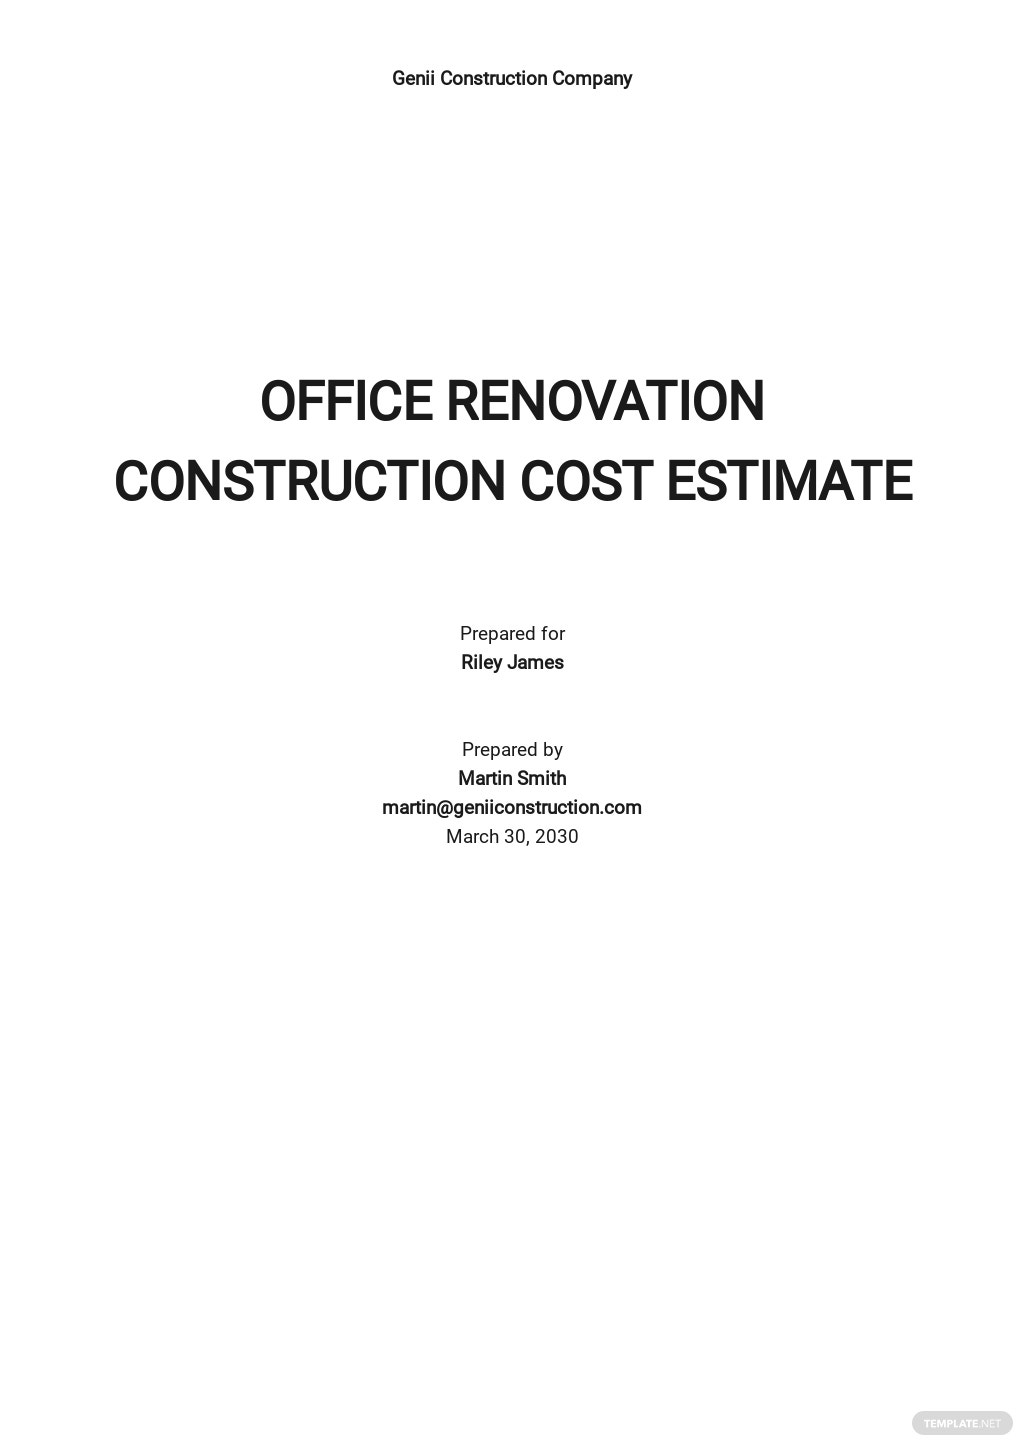 Simple Construction Cost Estimate Template [Free PDF] - Google Docs, Google Sheets, Excel, Word, Apple Numbers, Apple Pages